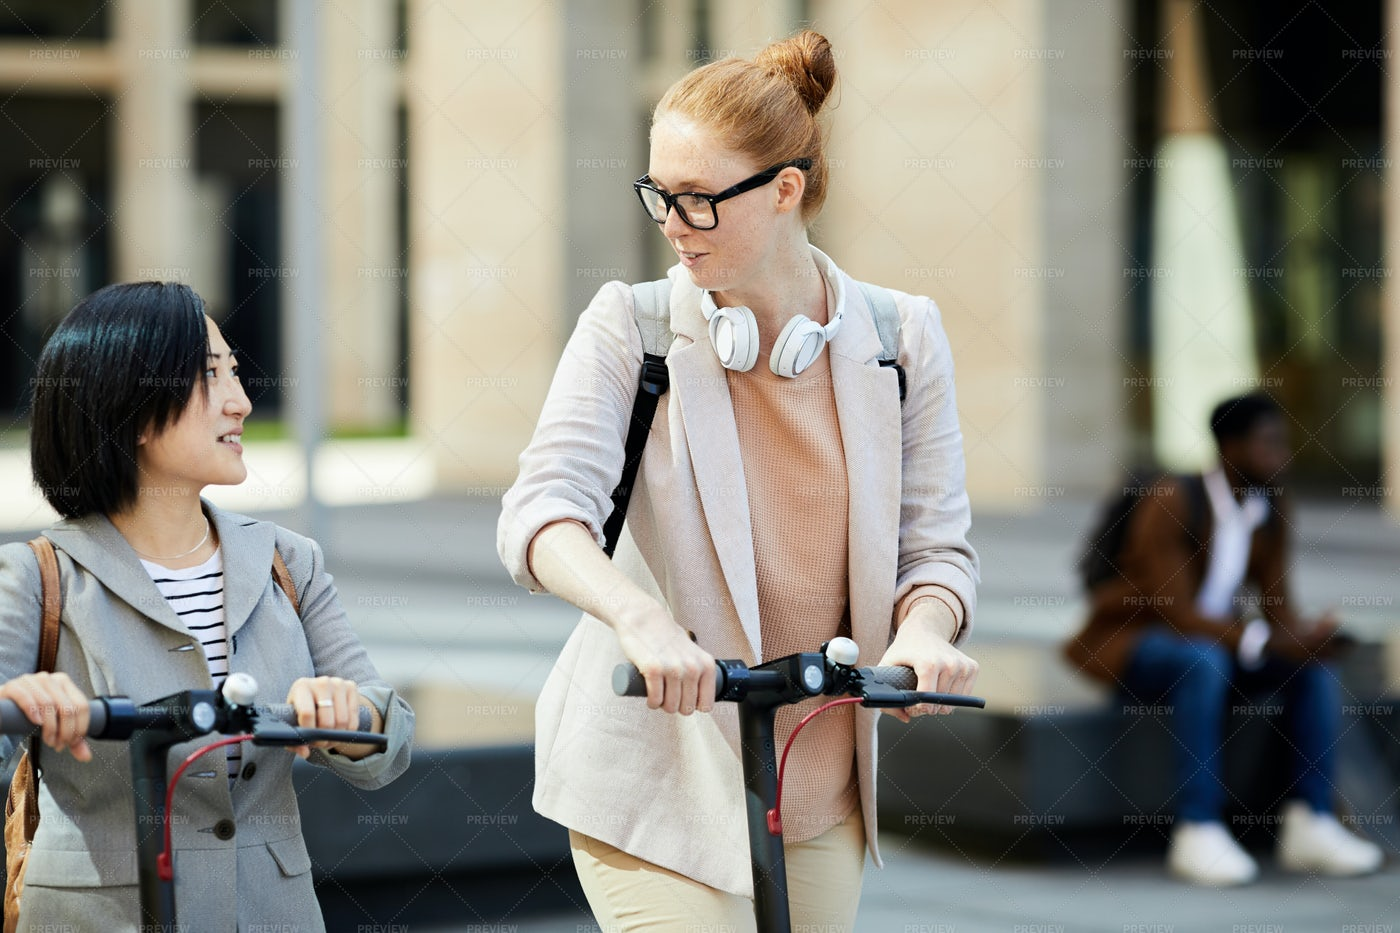 Girls Riding Scooters In City: Stock Photos